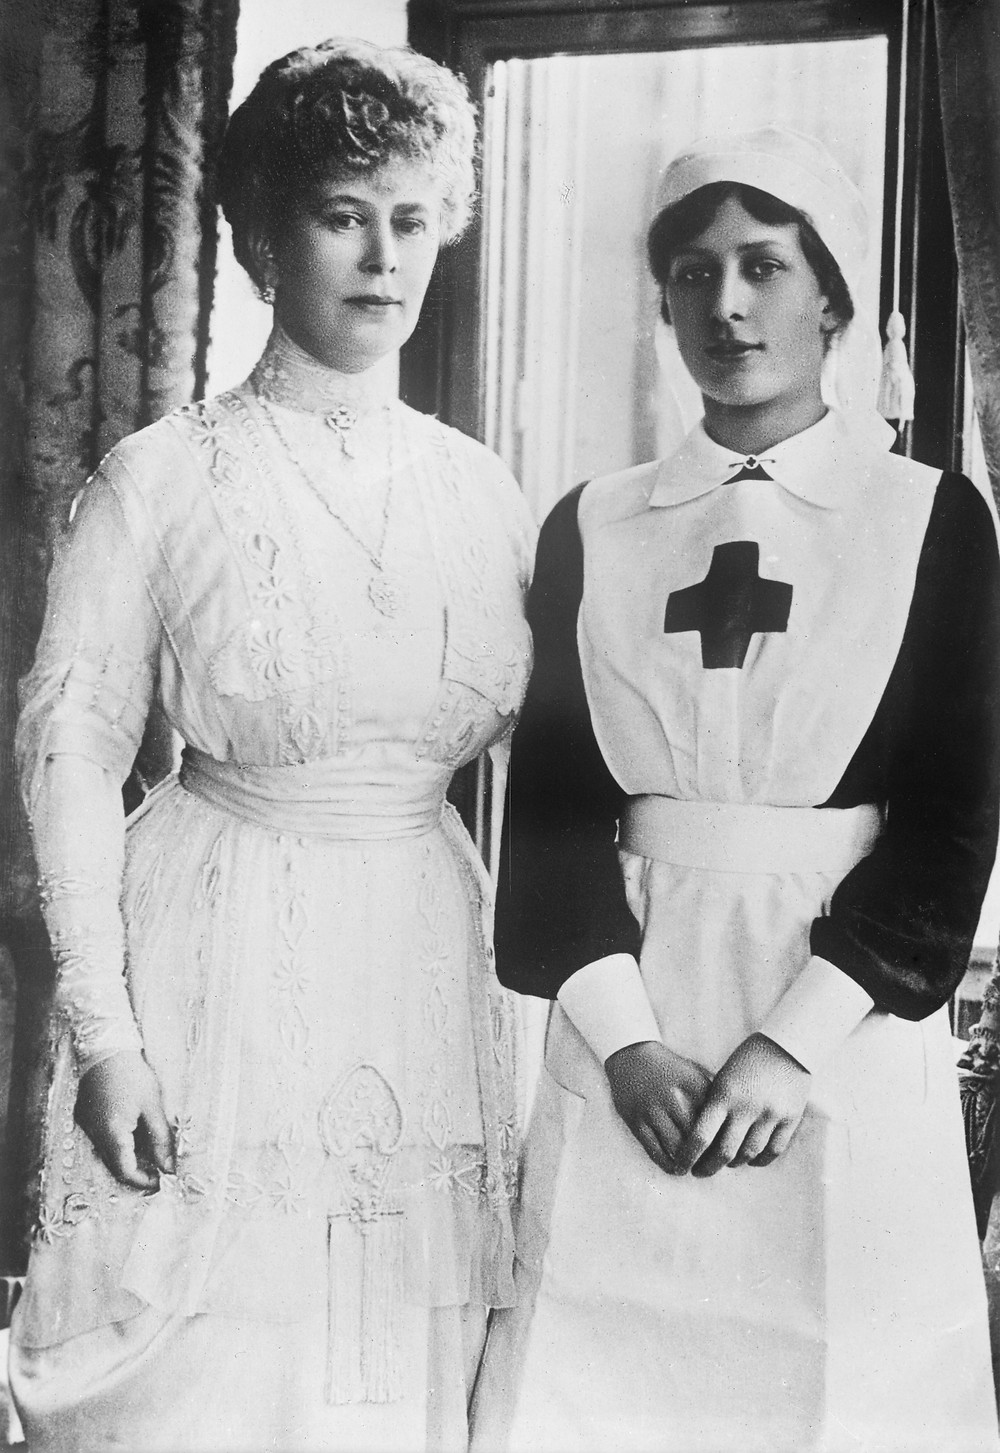 Princess Mary with her mother Queen Mary, during the First World War 1914-18